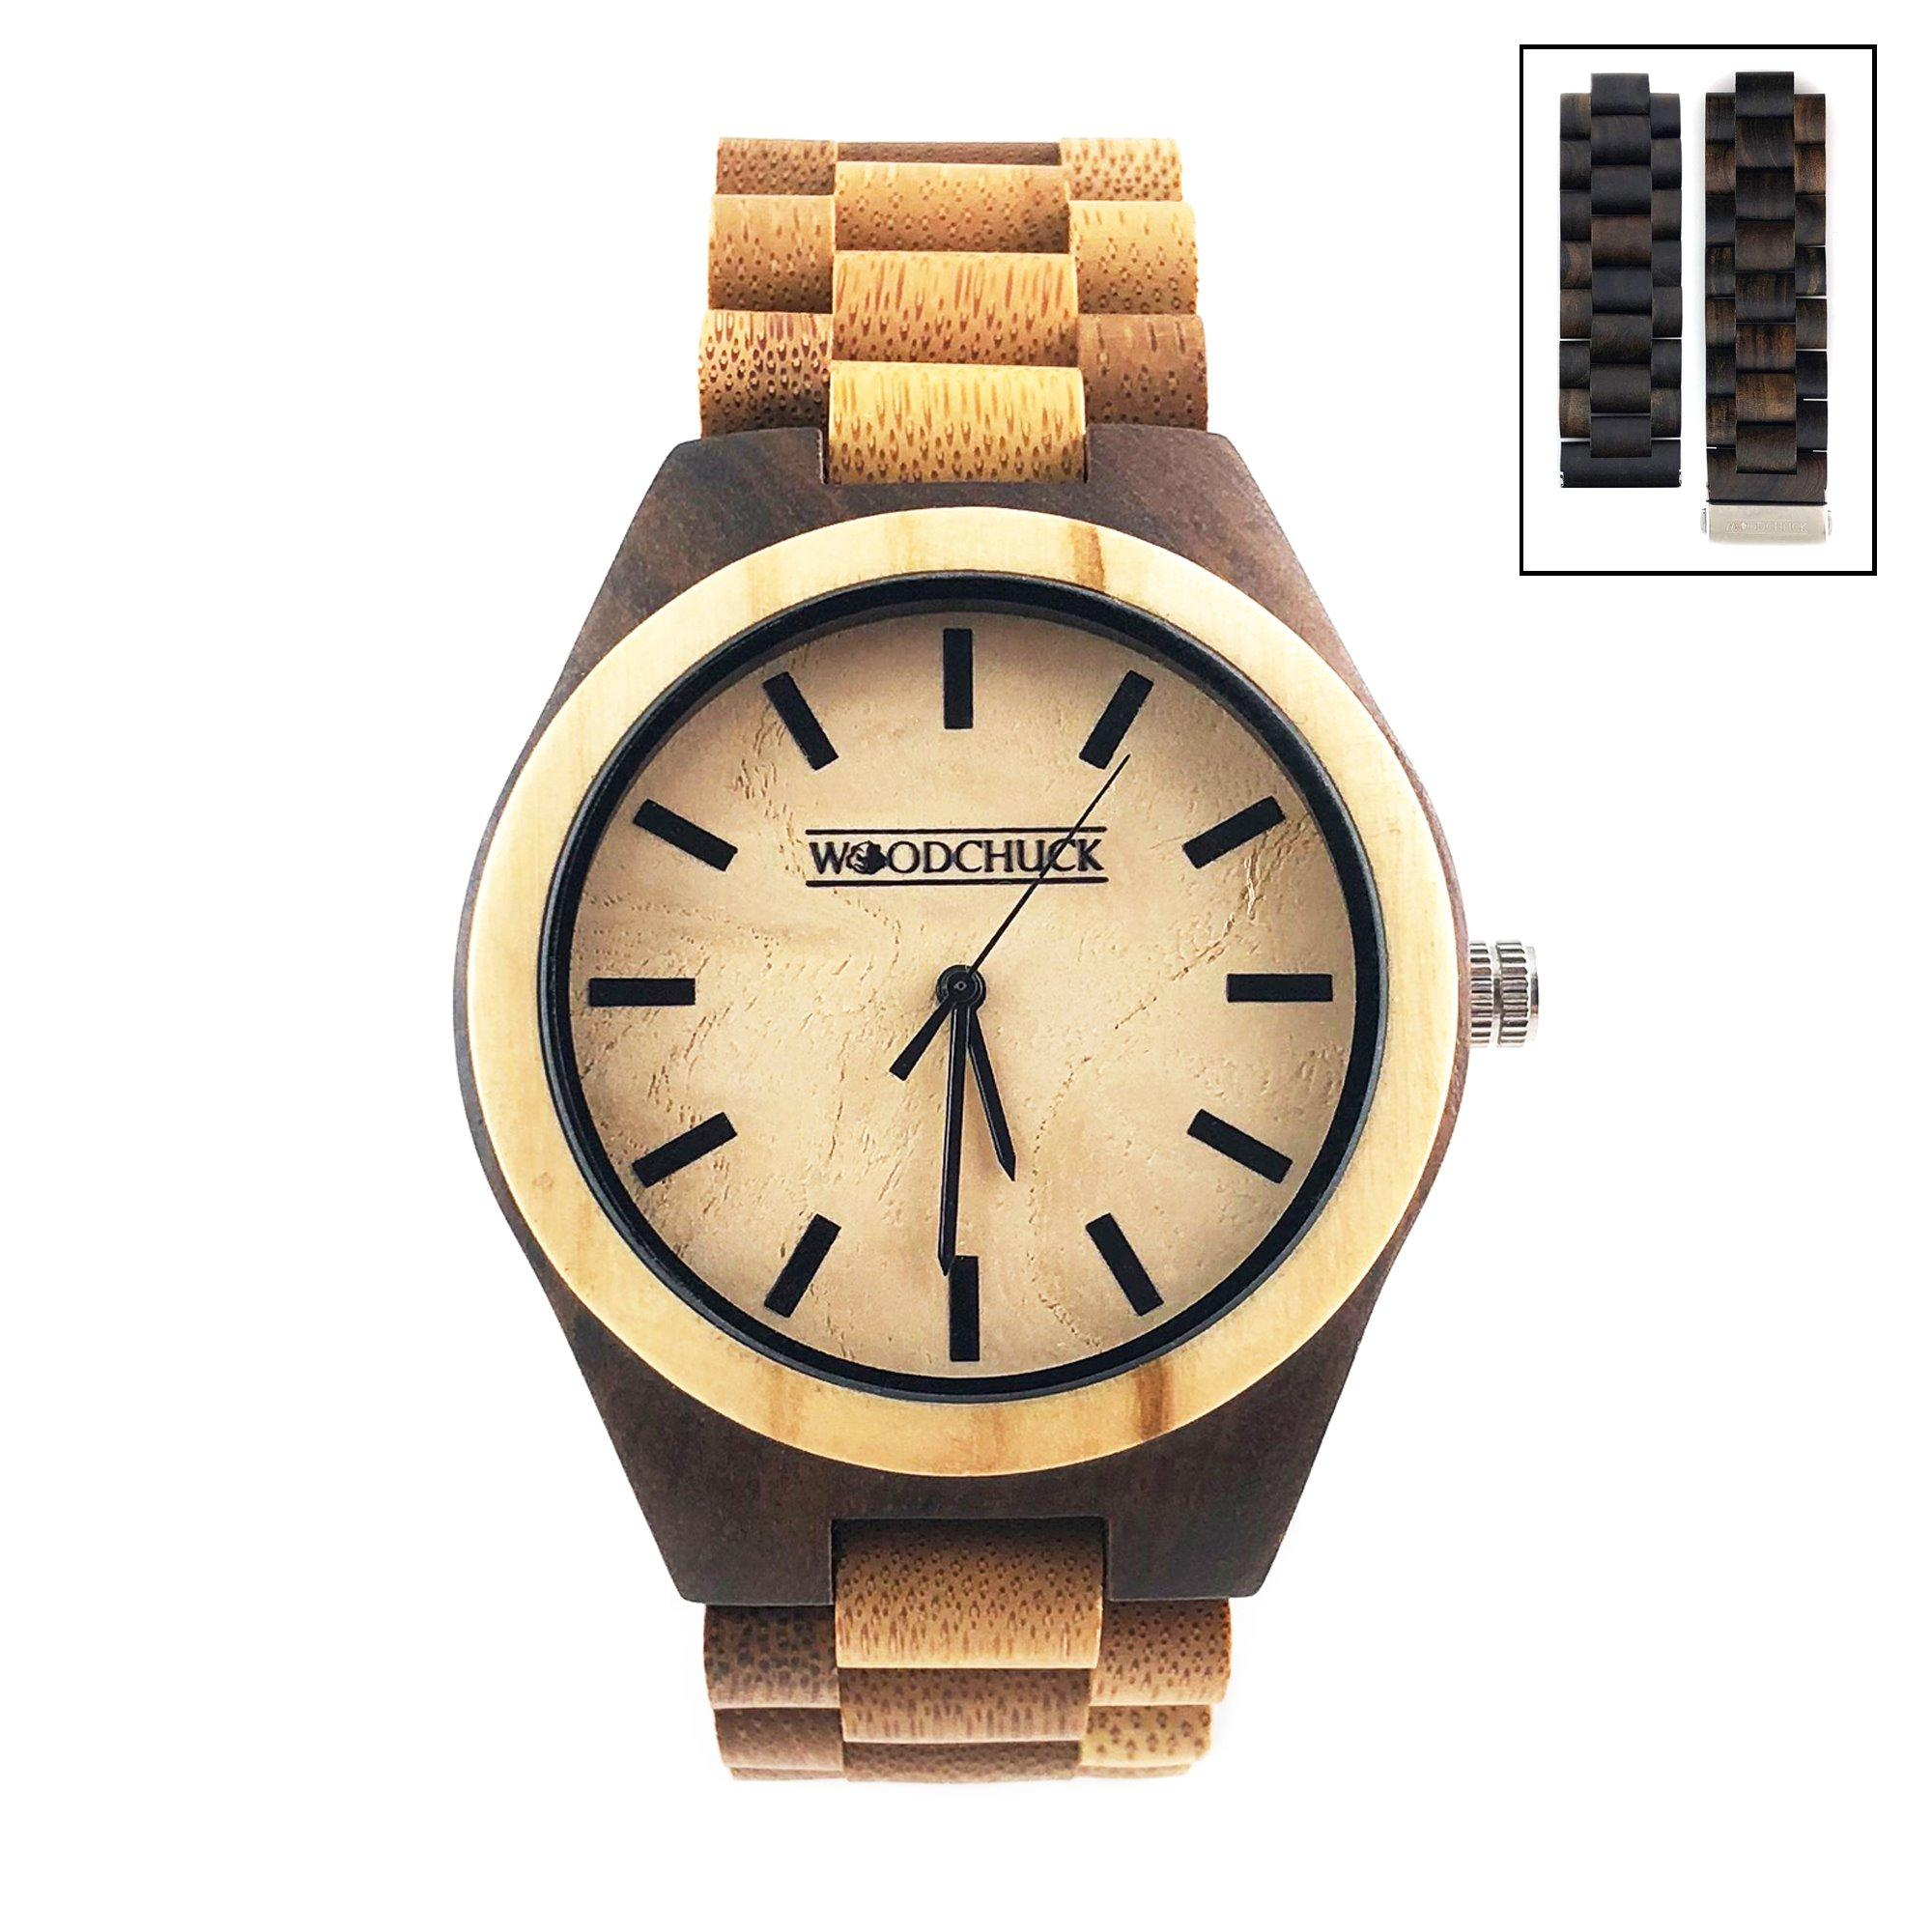 62827a142a Woodchuck Philippines  Woodchuck price list - Watches